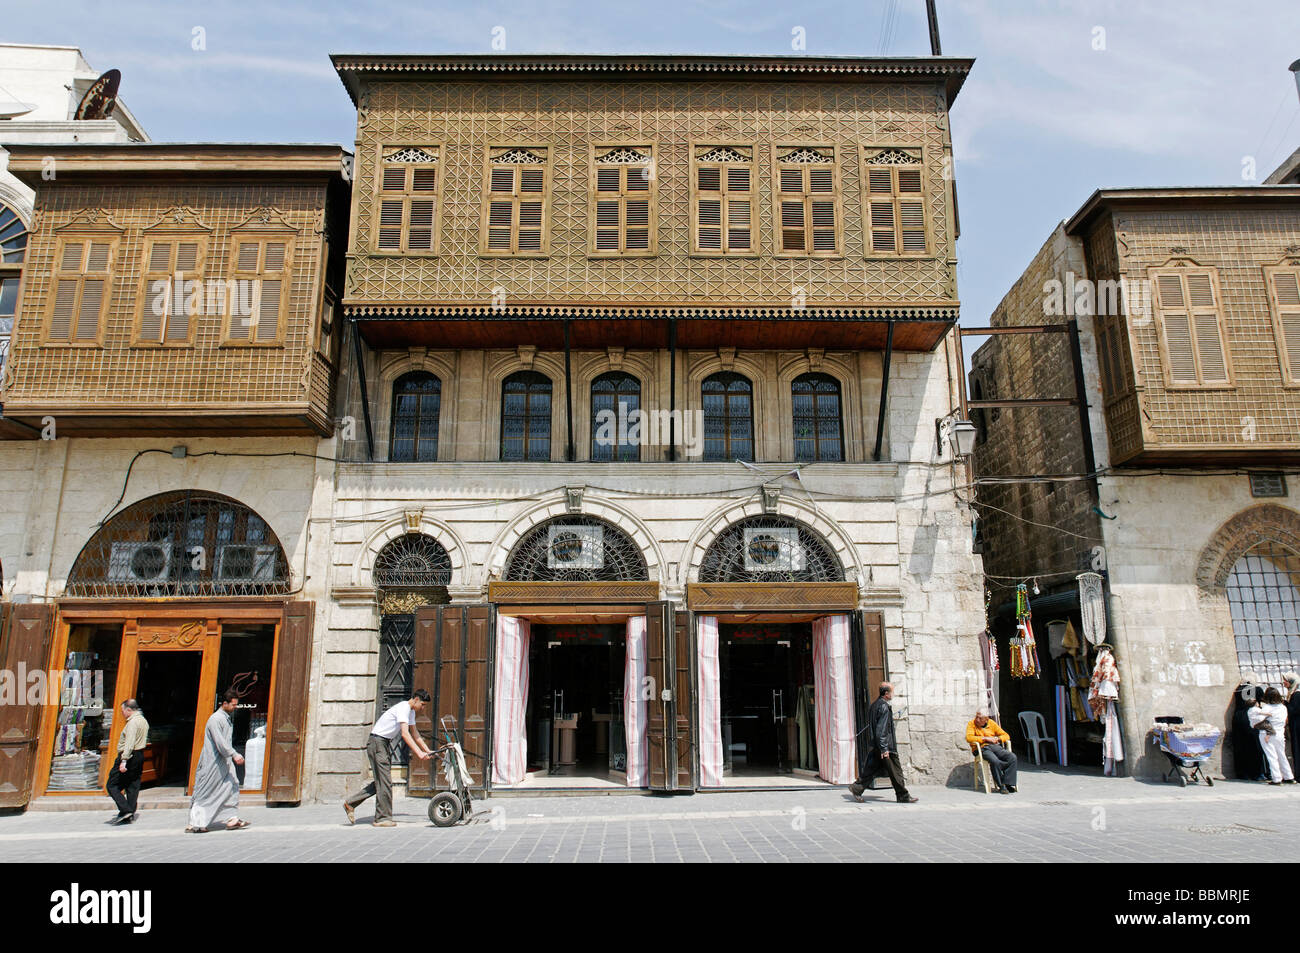 Wooden balconies, Ottoman architectural style, in Aleppo, Syria, Middle East, Asia - Stock Image